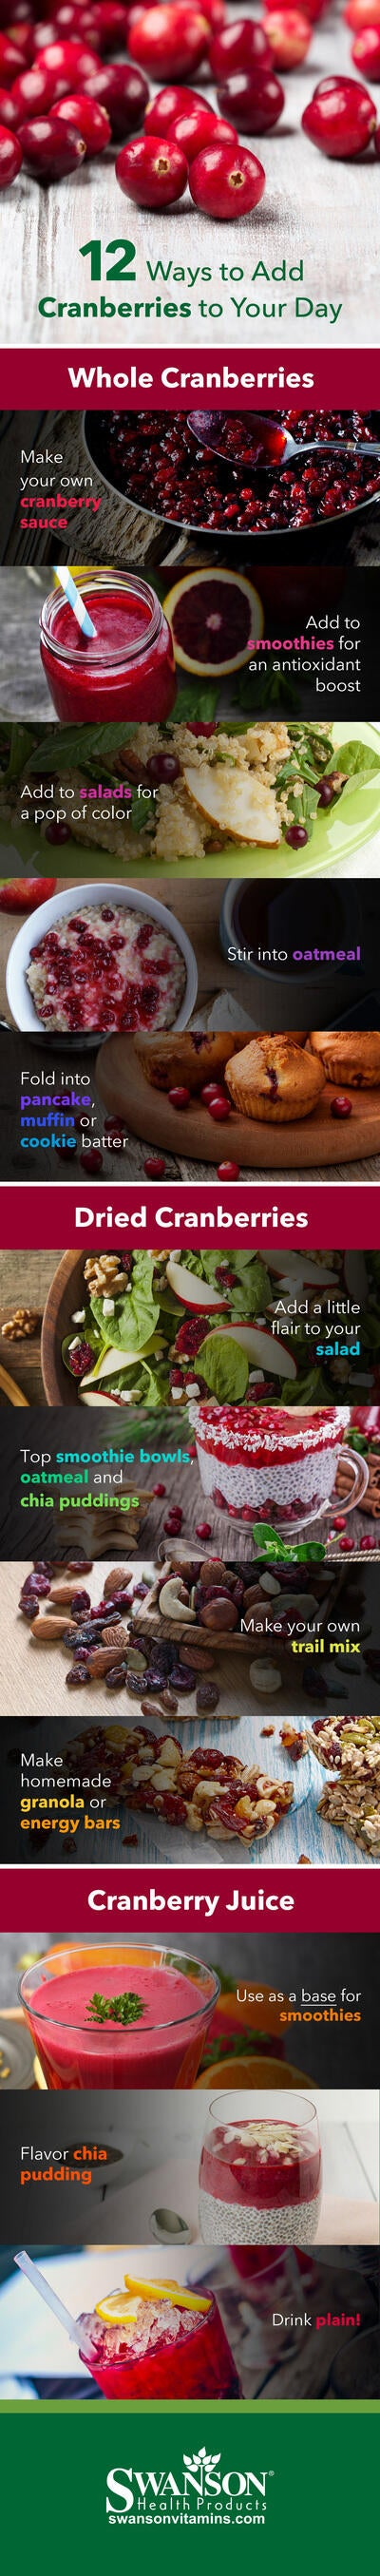 Benefits of Cranberries (Plus 12 Ways to Use Them!)